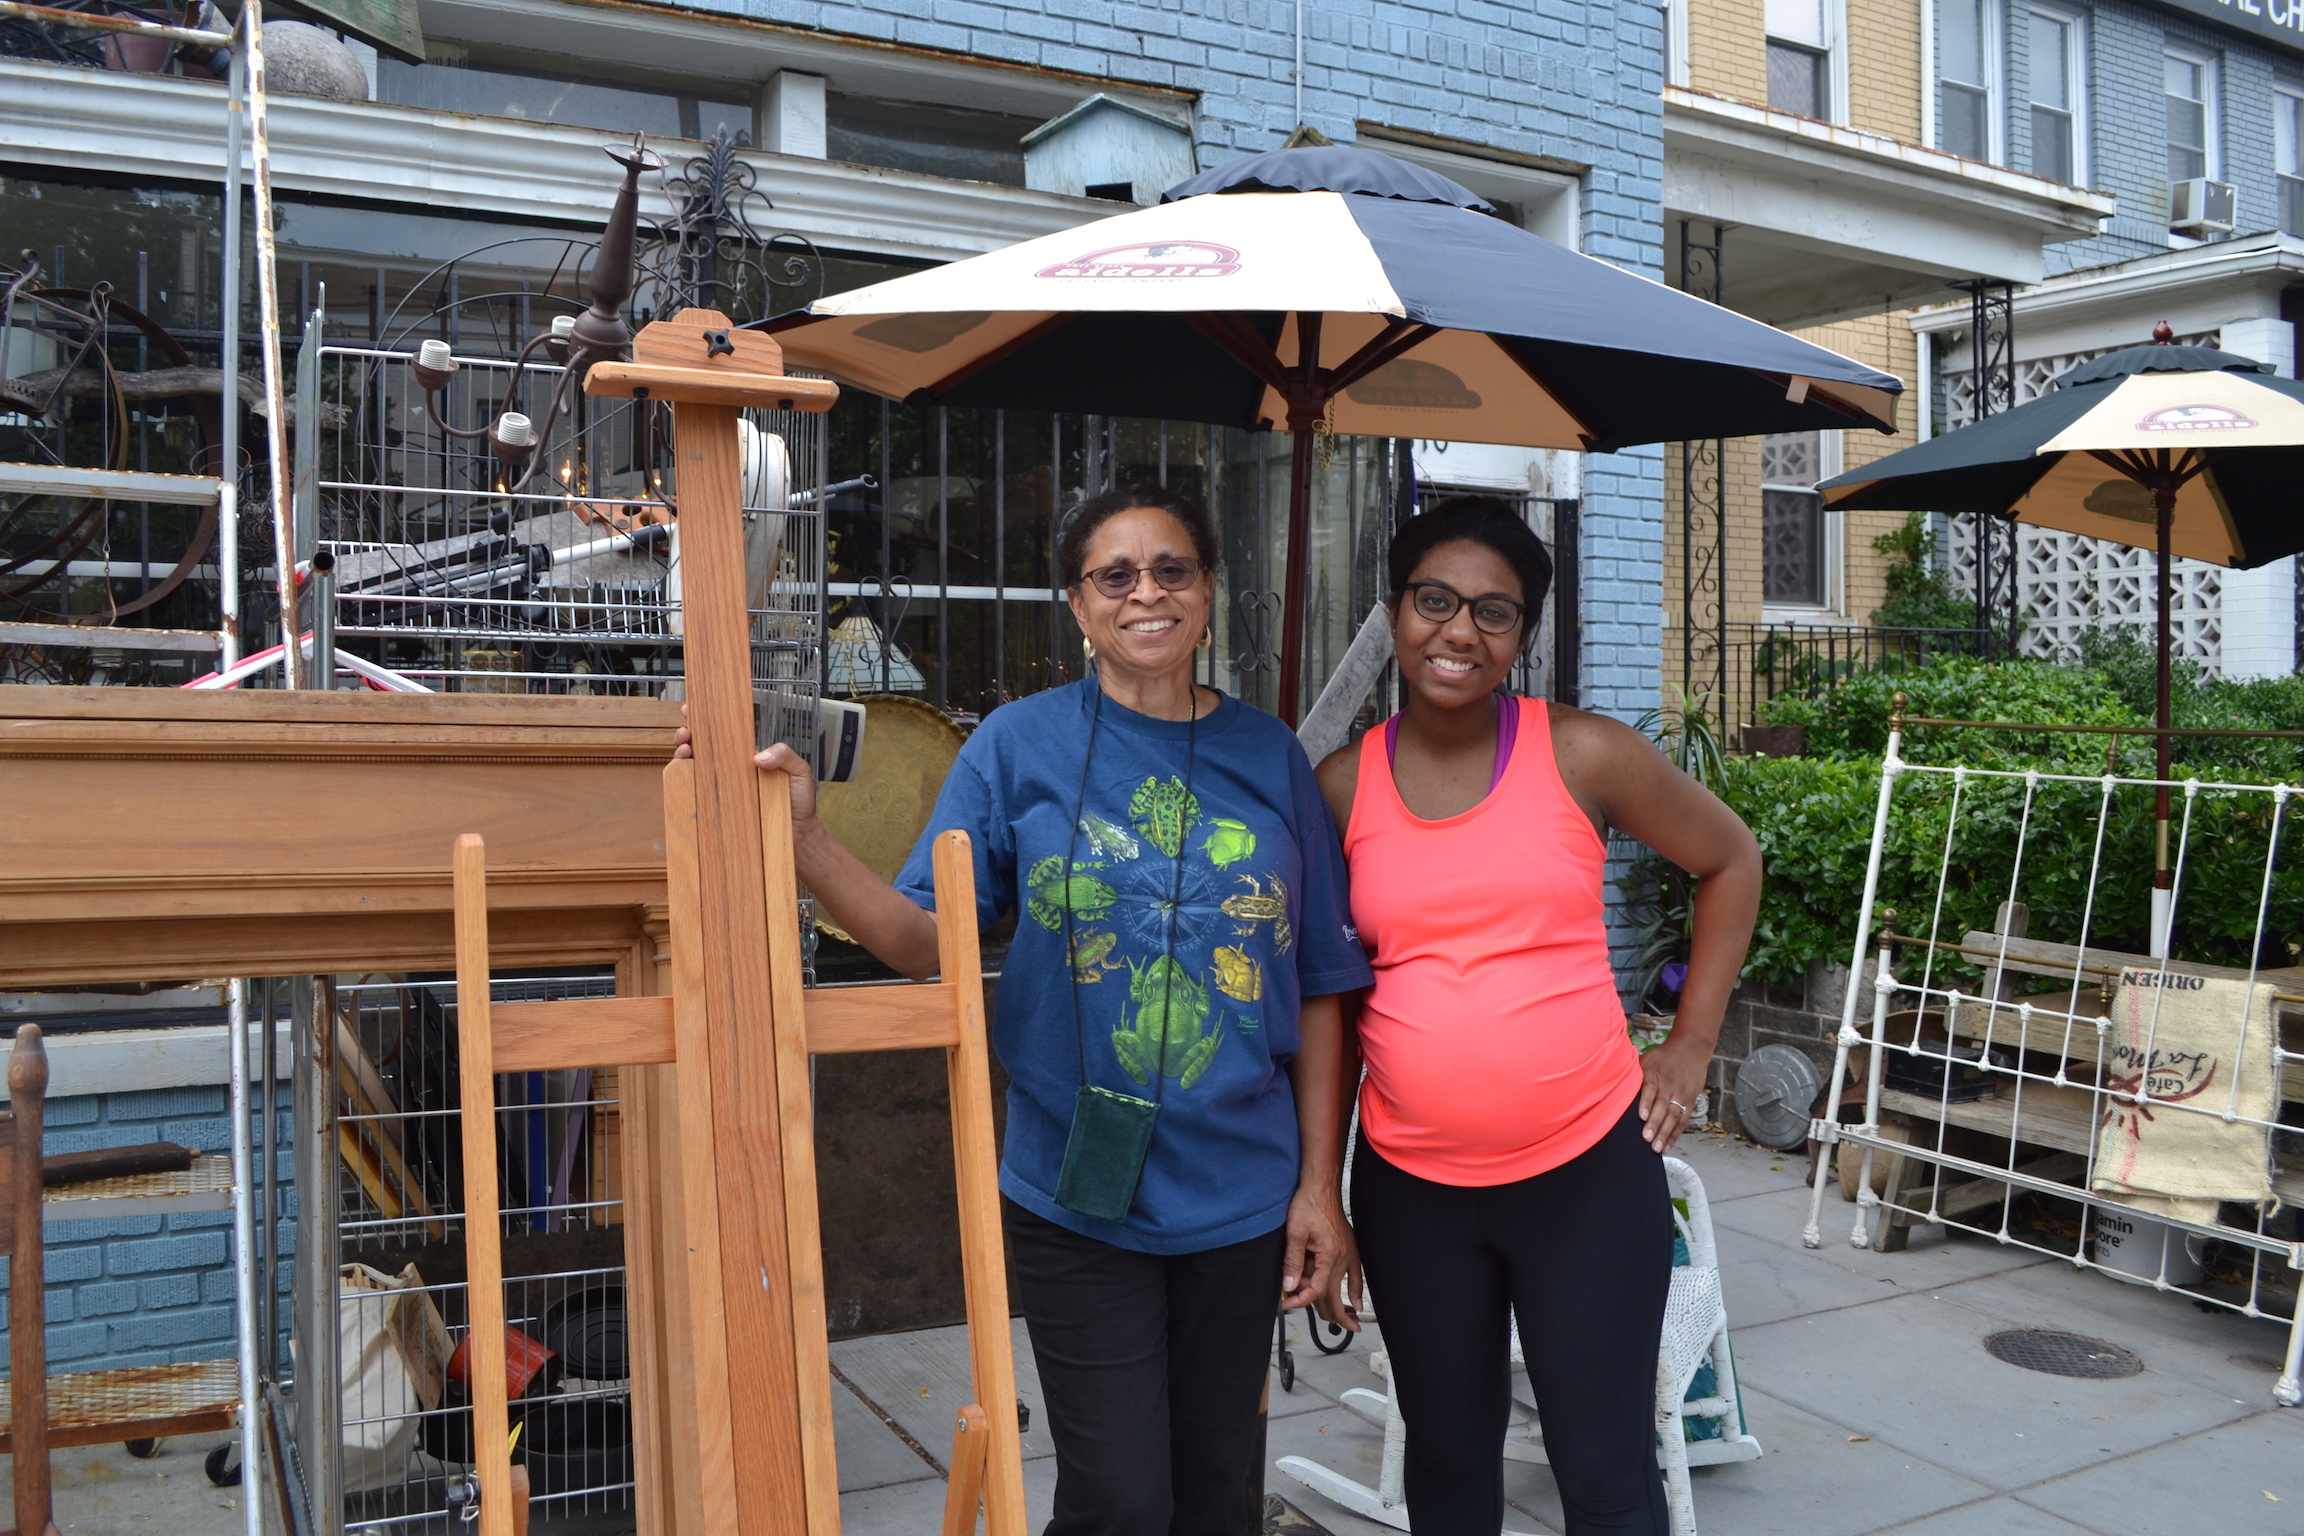 Had a delightful conversation with Carolyn Davis and Chelsea Crawford while they waited to buy an easel this morning.